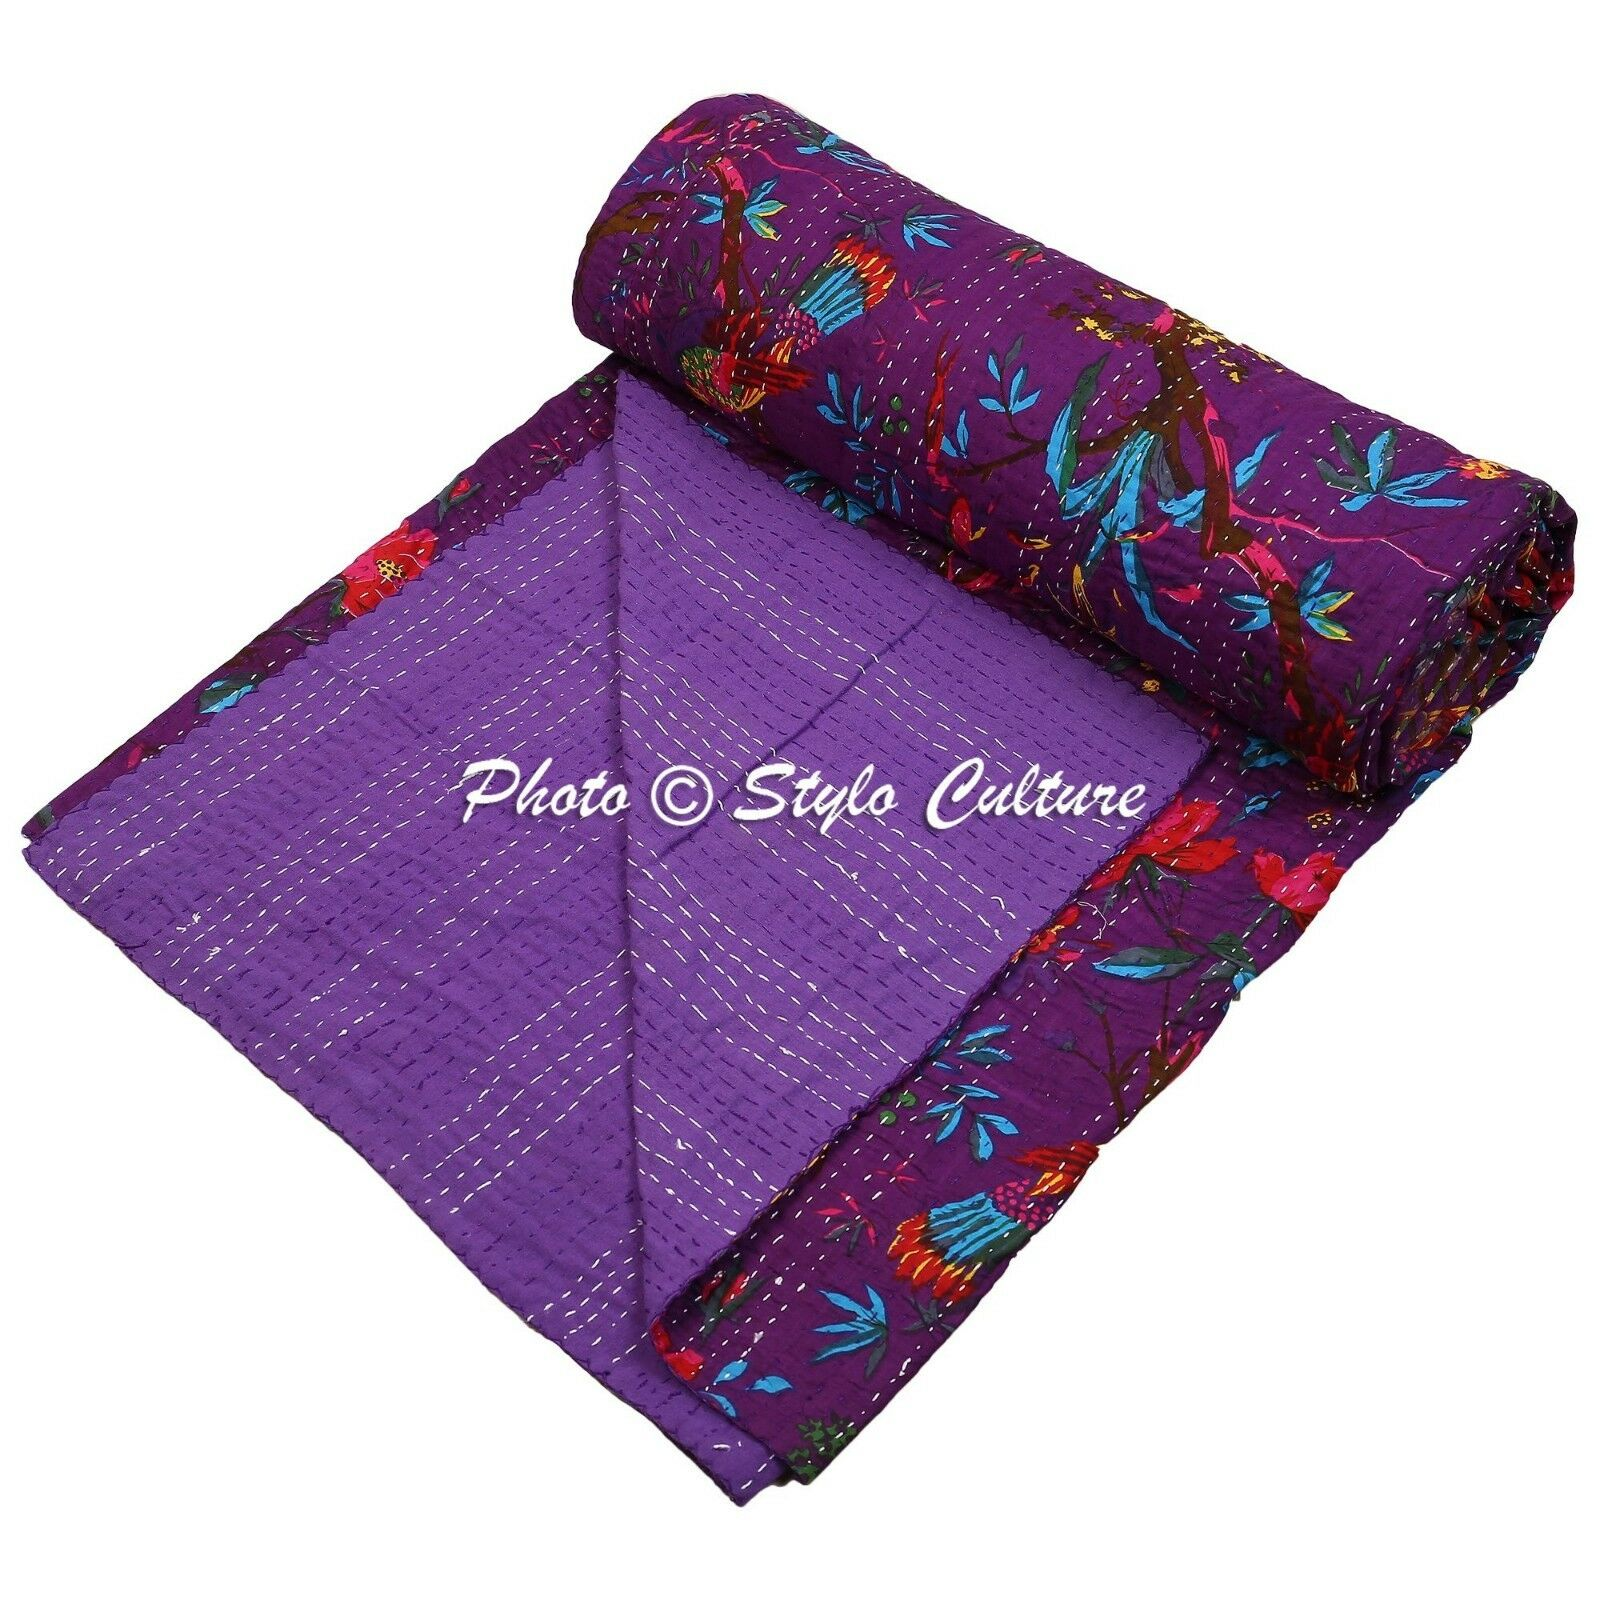 Vintage Kantha Quilt Bedding Home Decor Quilts Cotton Bedspread Coverlet Covers